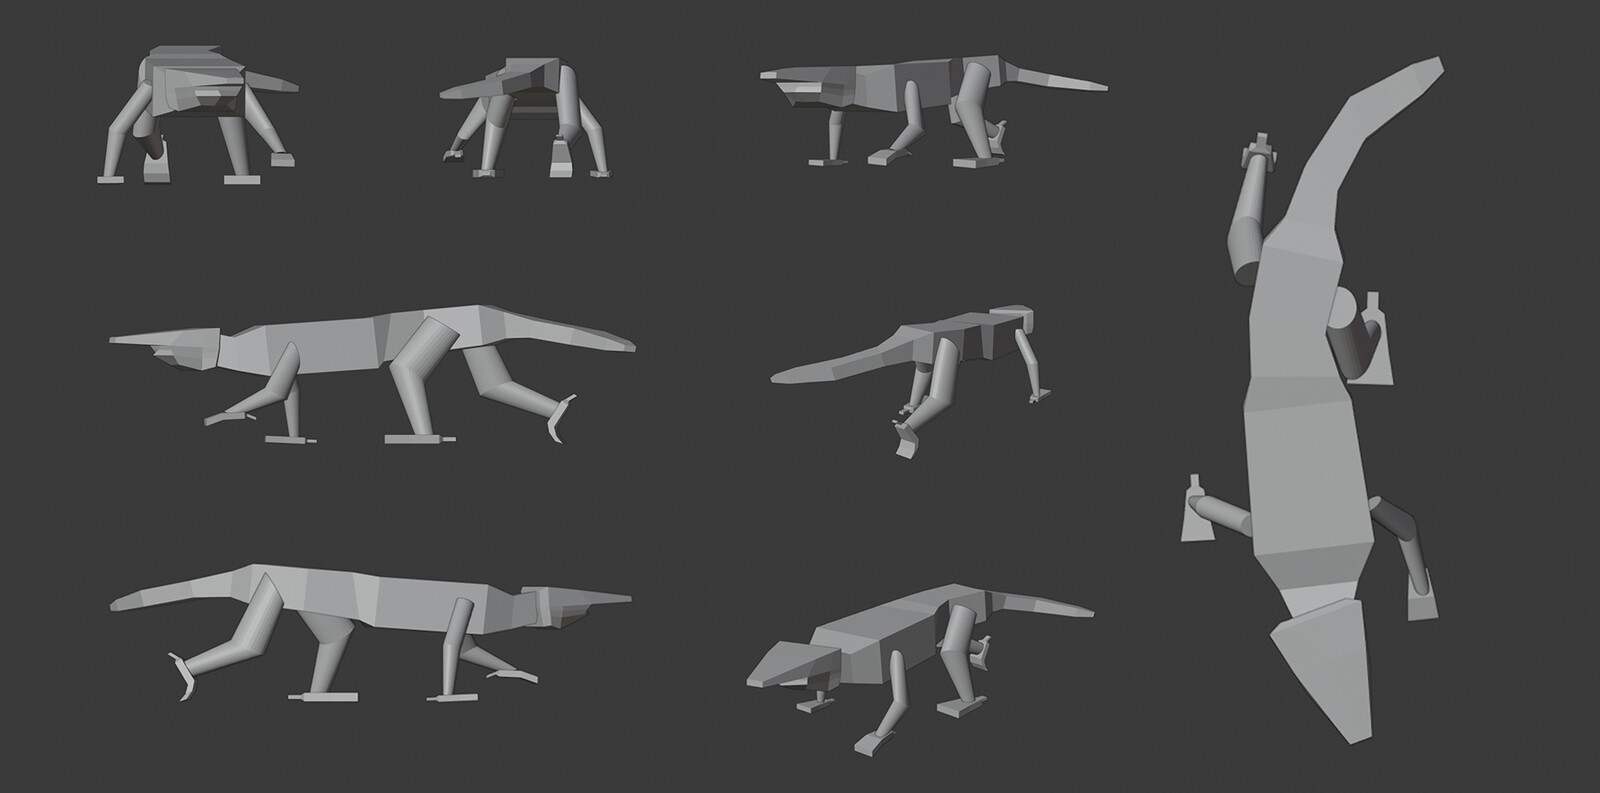 Very simple 3d model done for pose and camera angle exploration